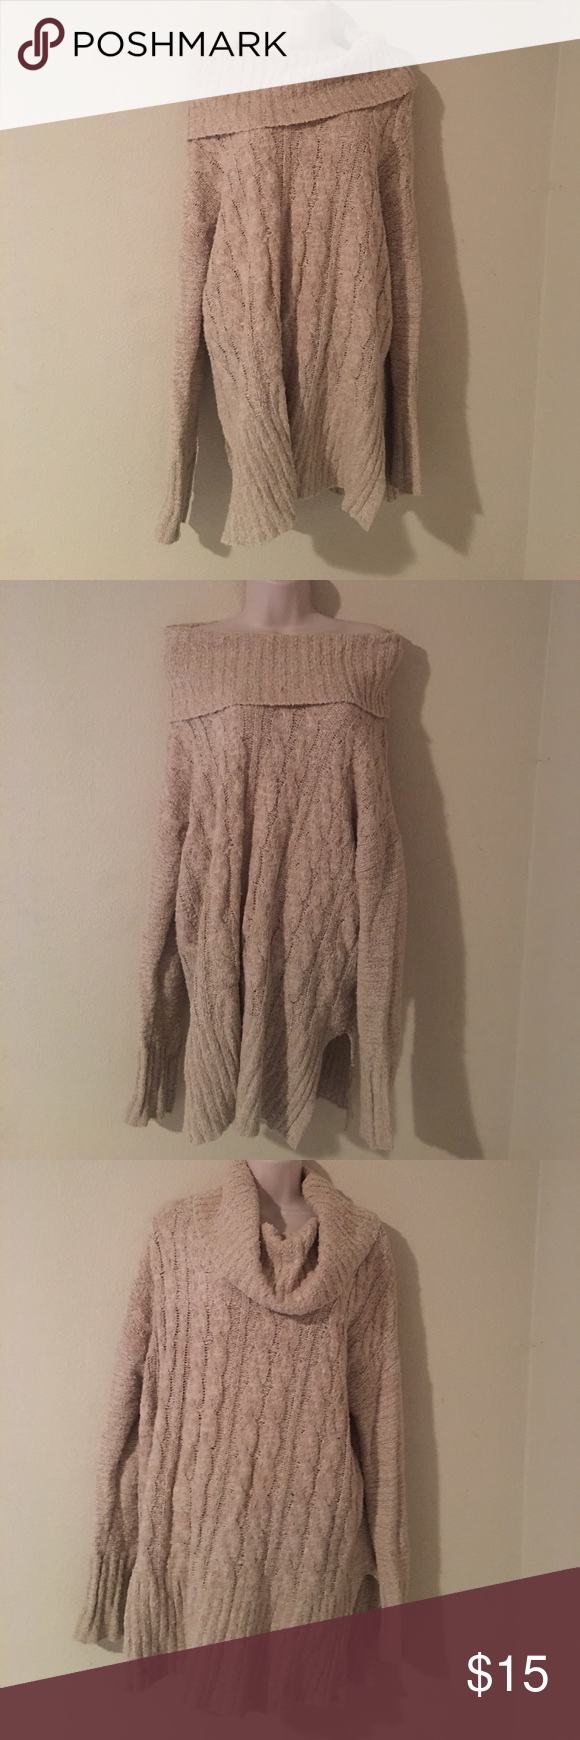 Tan/Cream cable knit tunic sweater ♥ | Tunic sweater, Cable ...